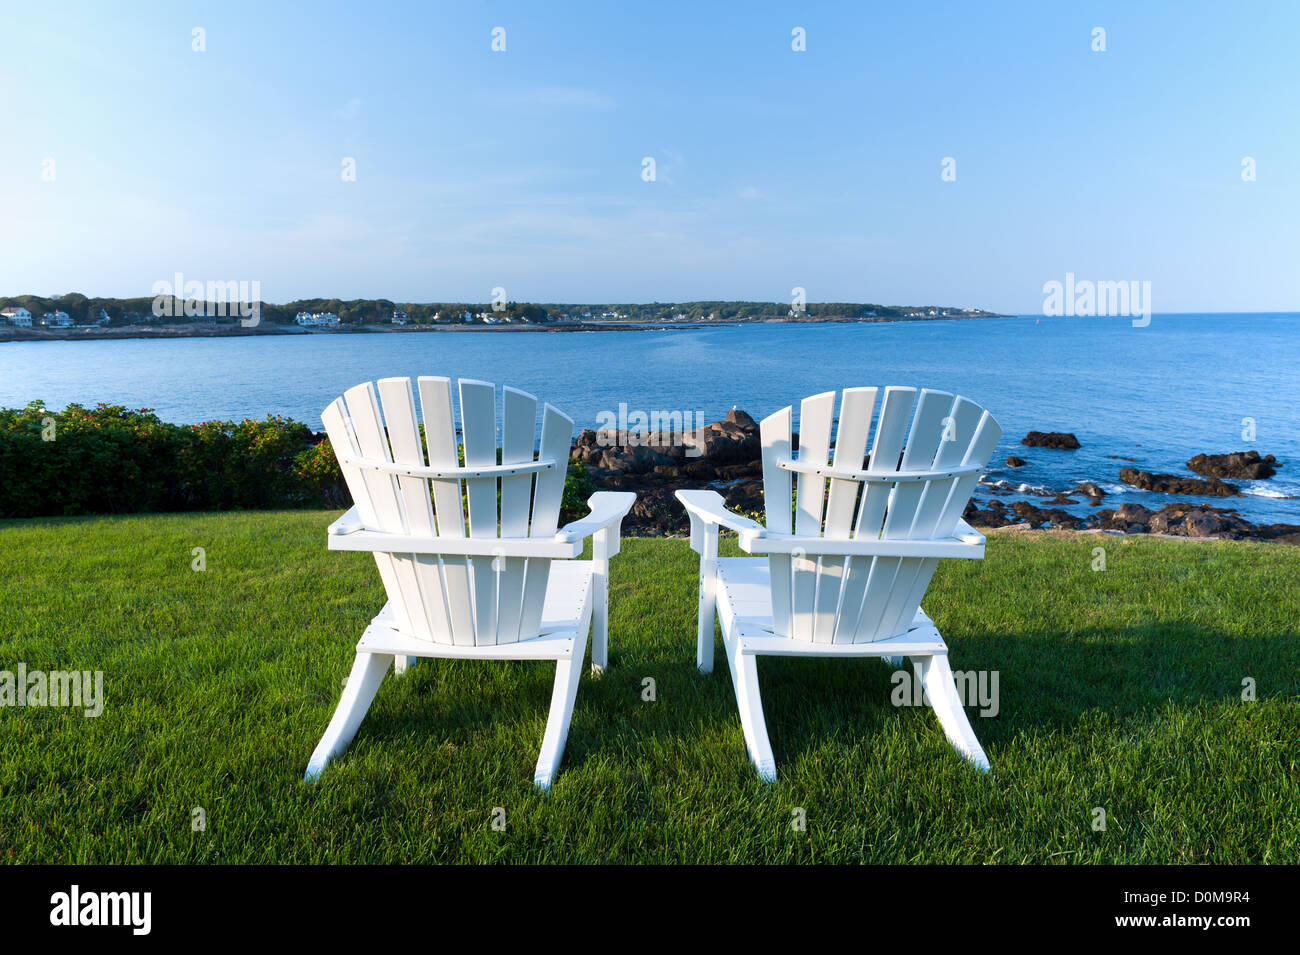 Delicieux Two White Adirondack Chairs On A Lawn Overlooking The Atlantic Ocean In  York Beach, Maine